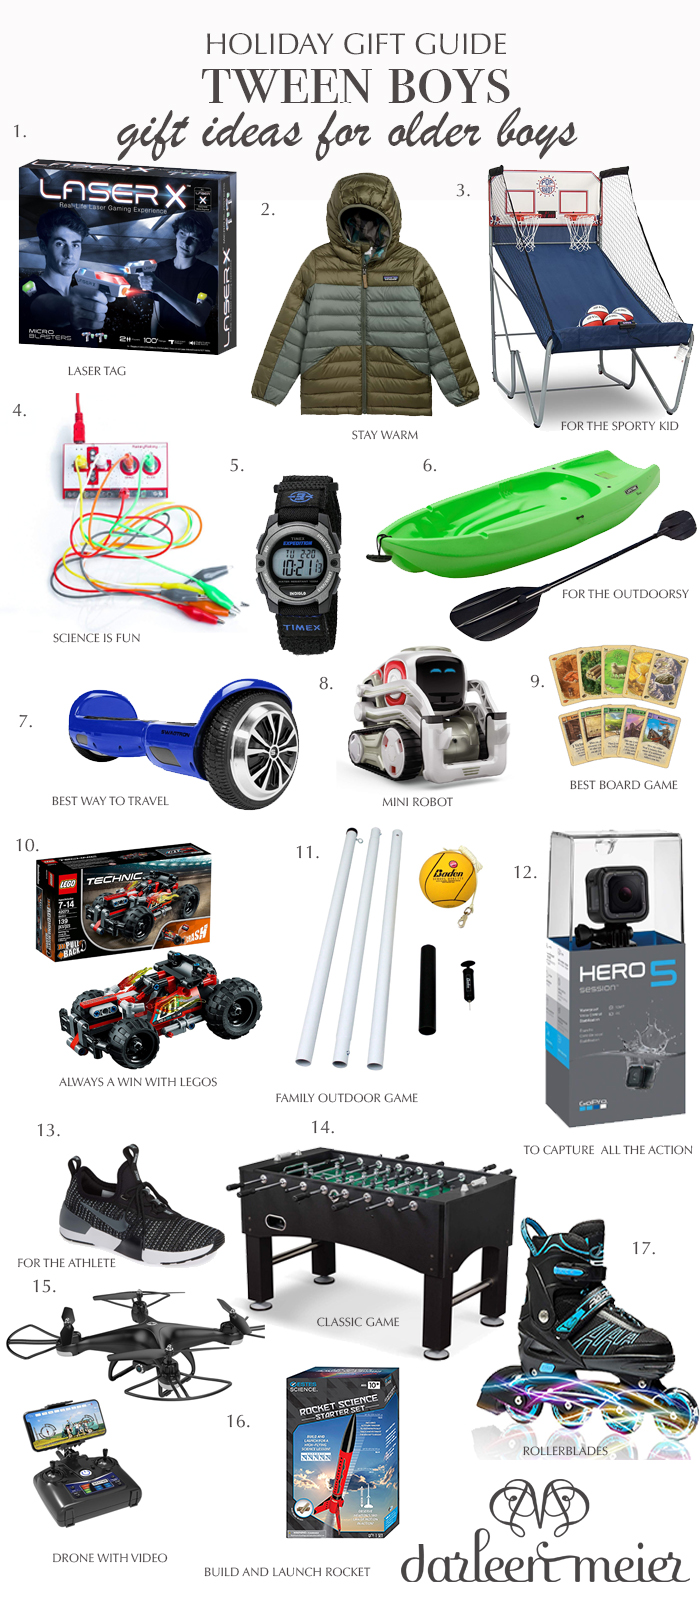 HOLIDAY GIFT GUIDE FOR TWEEN BOY